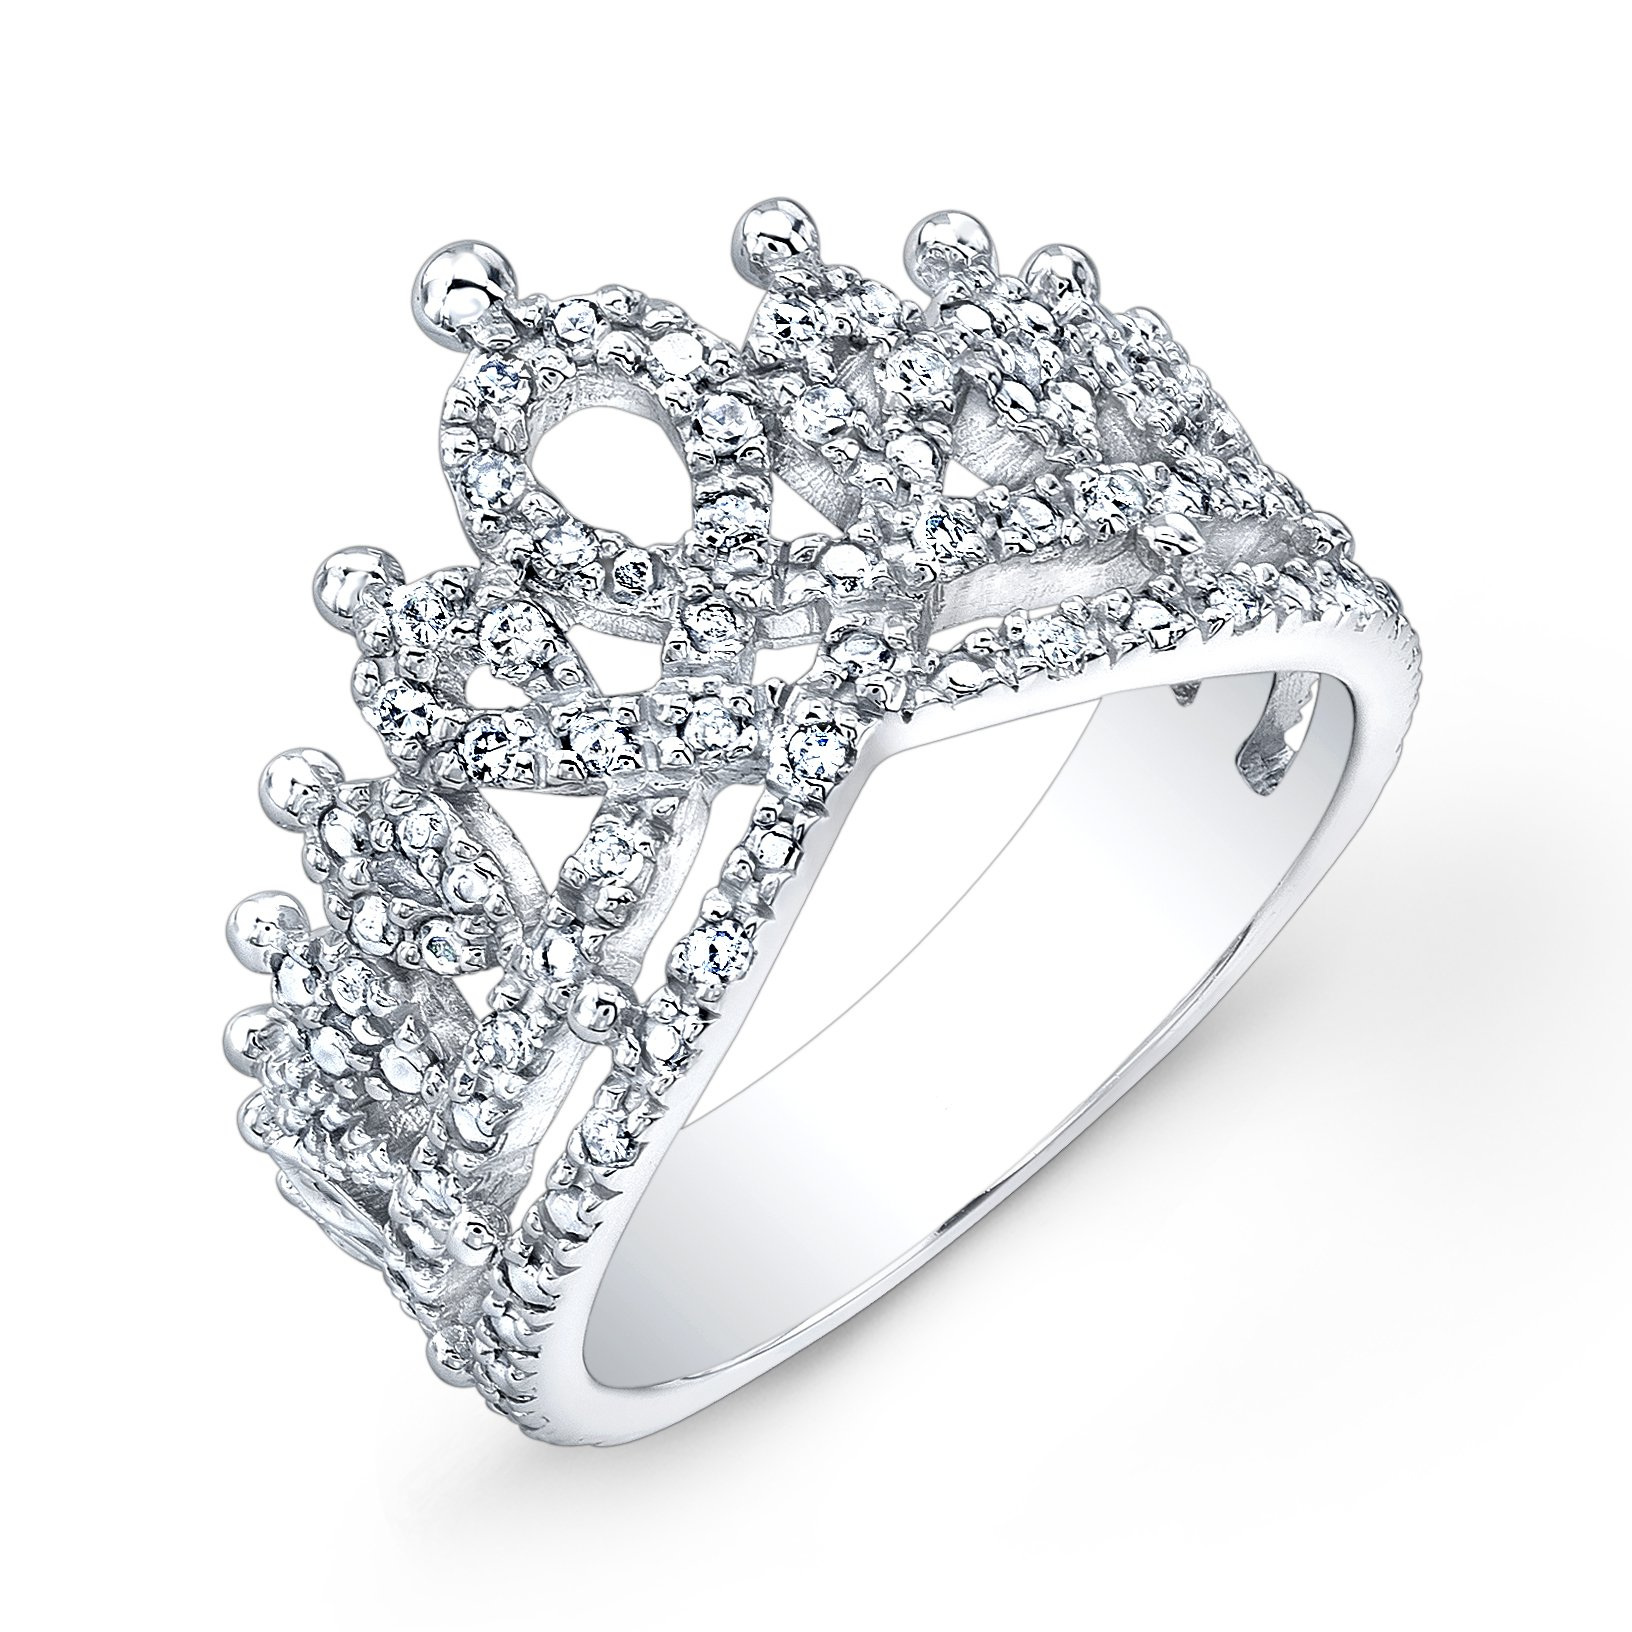 Kay mothers ring